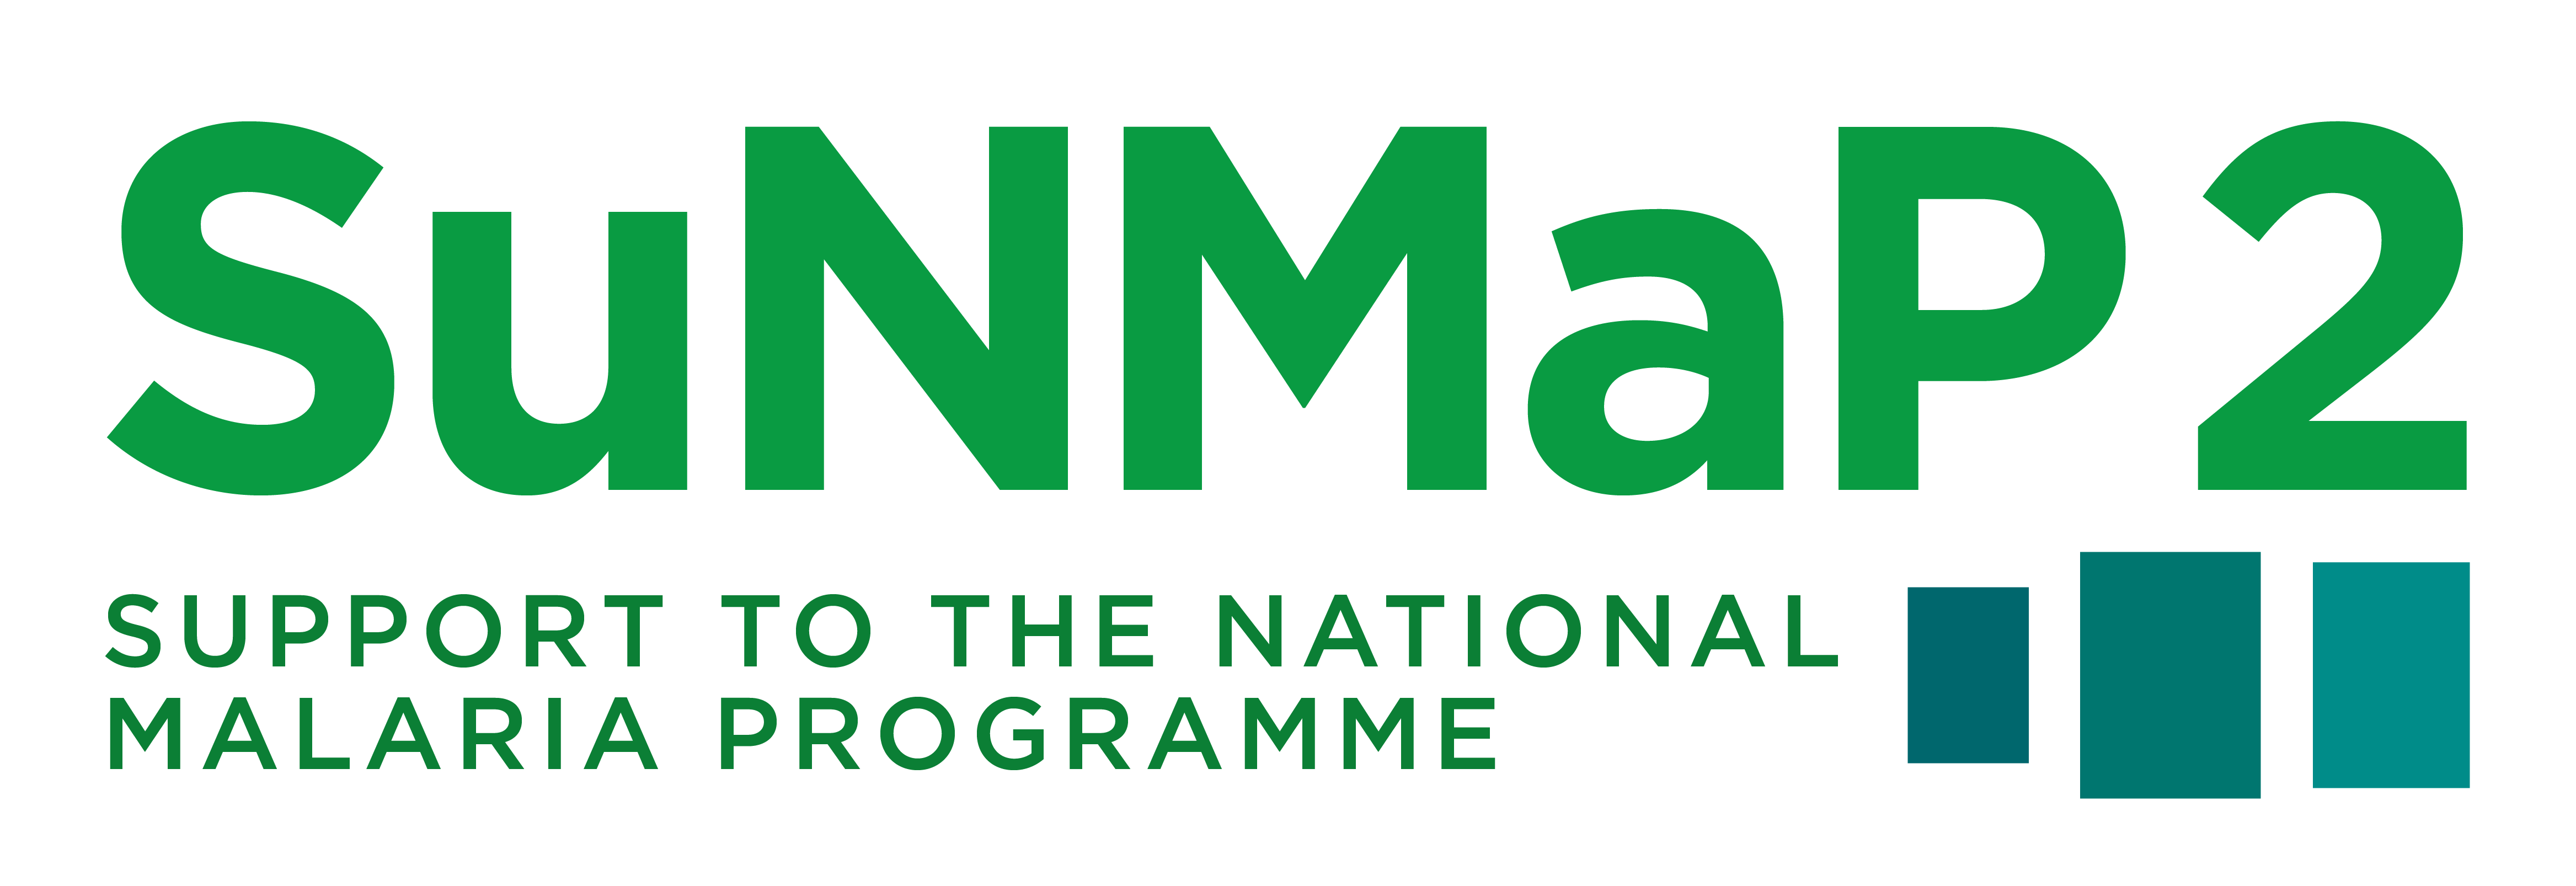 Support to the National Malaria Programme in Nigeria 2